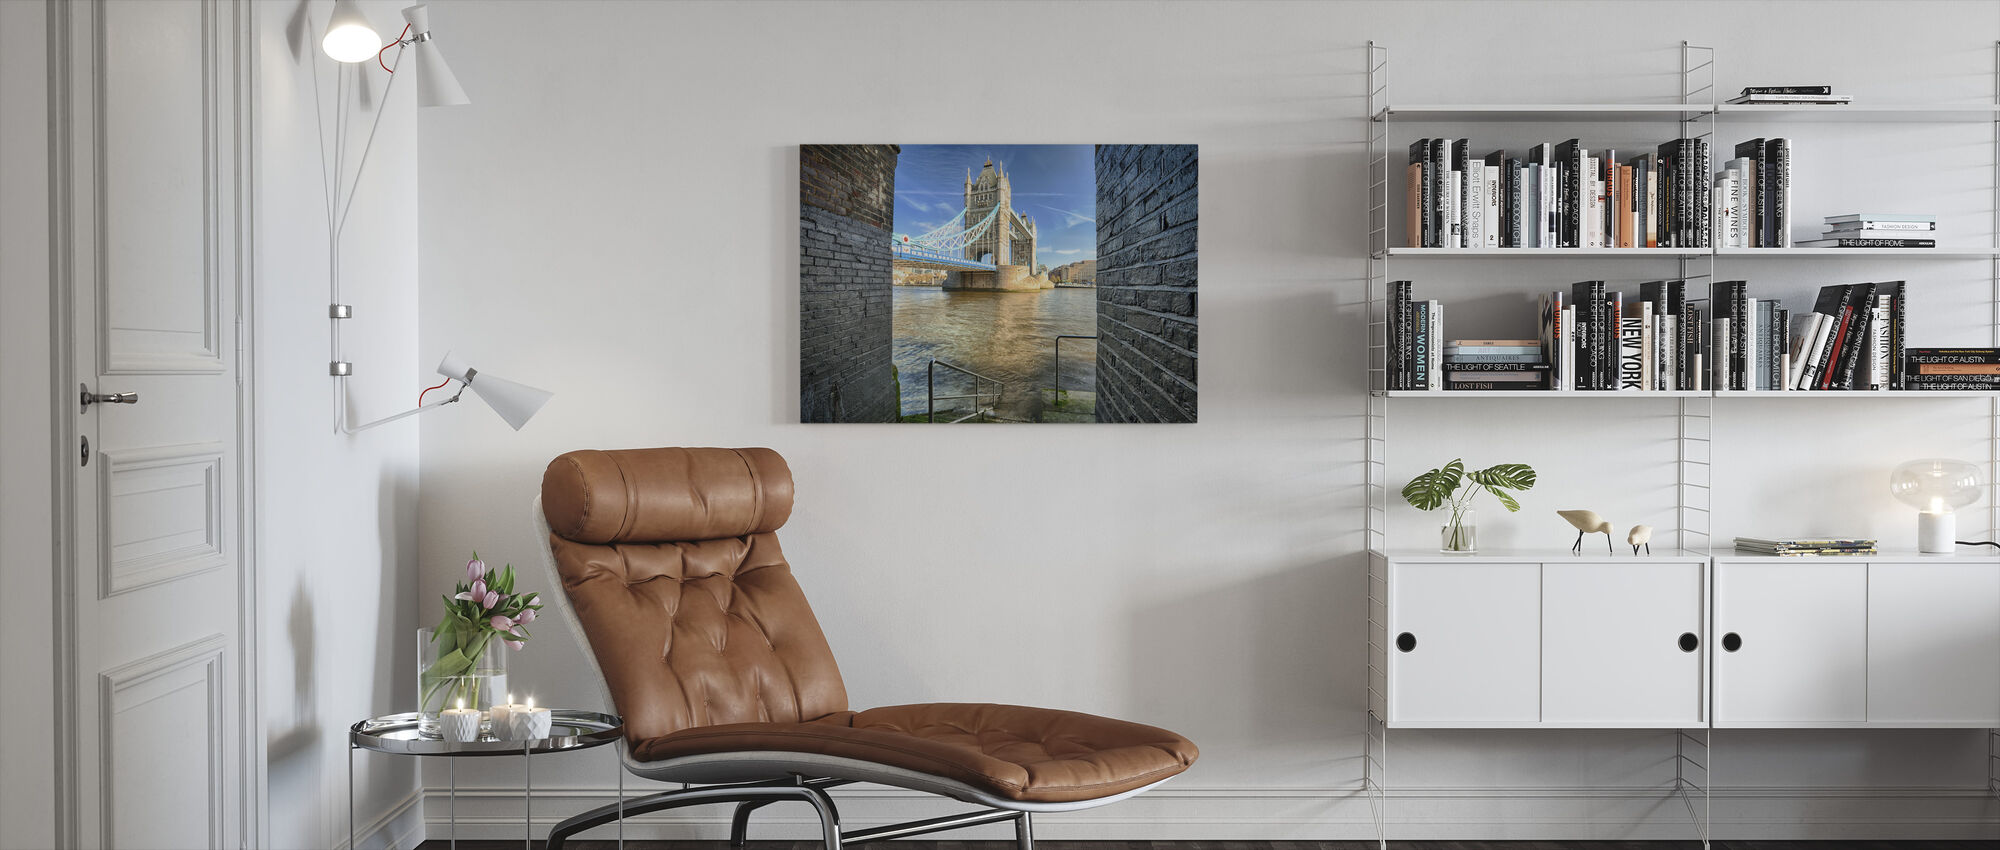 Alternative View on Tower Bridge - Canvas print - Living Room